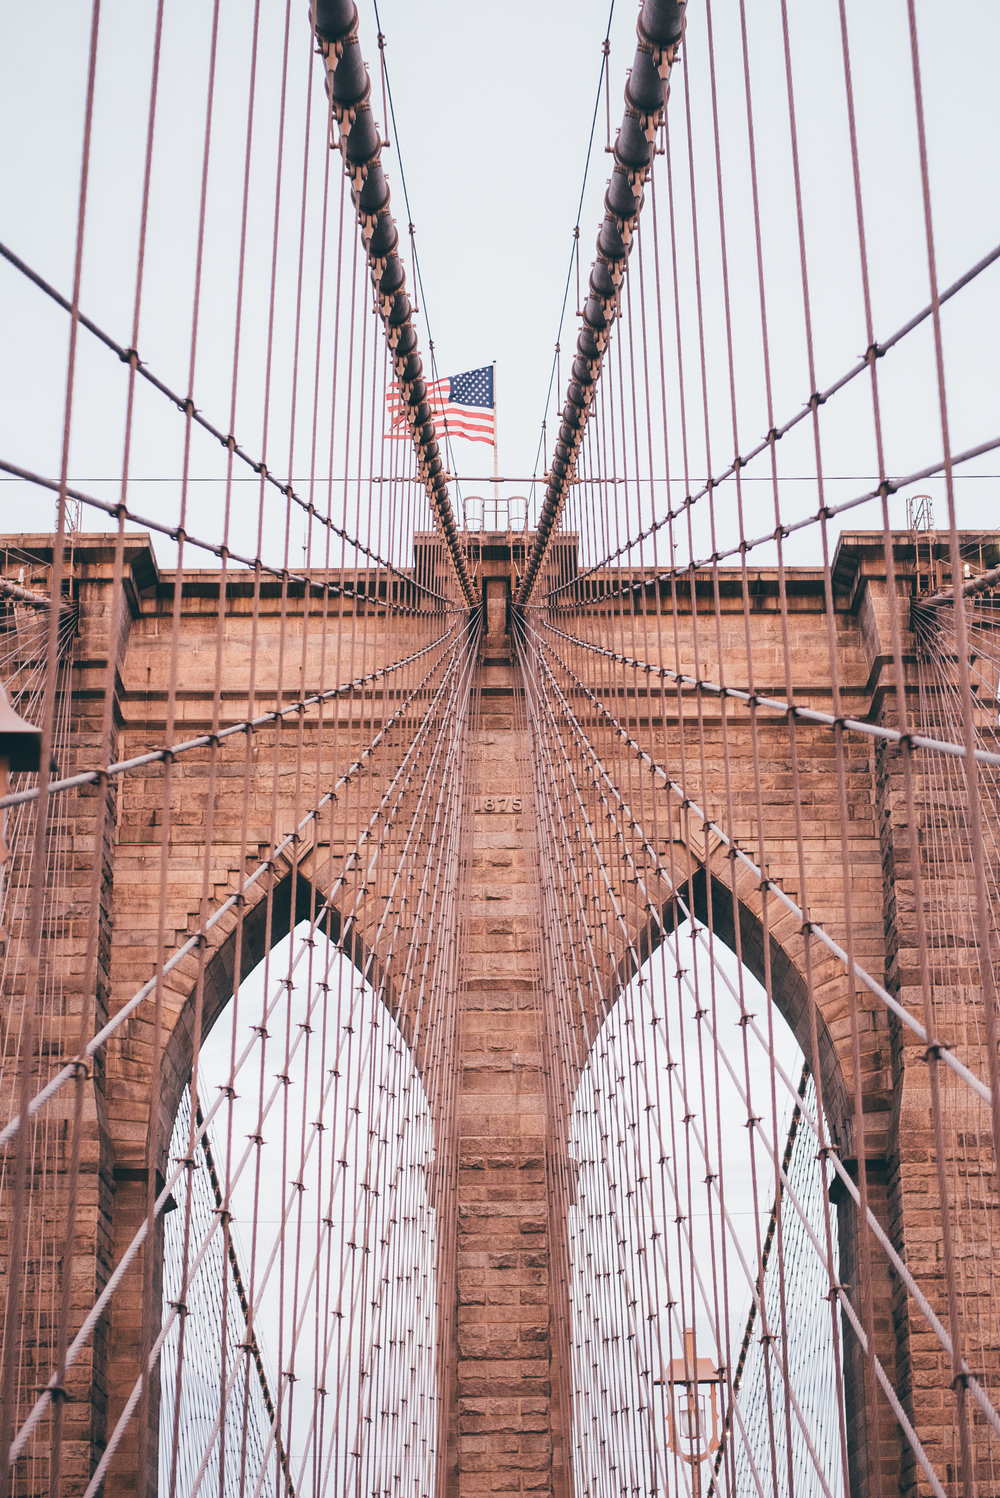 The Brooklyn Bridge has been around for 125 years and its architect was a German immigrant by the name of John Roebling.